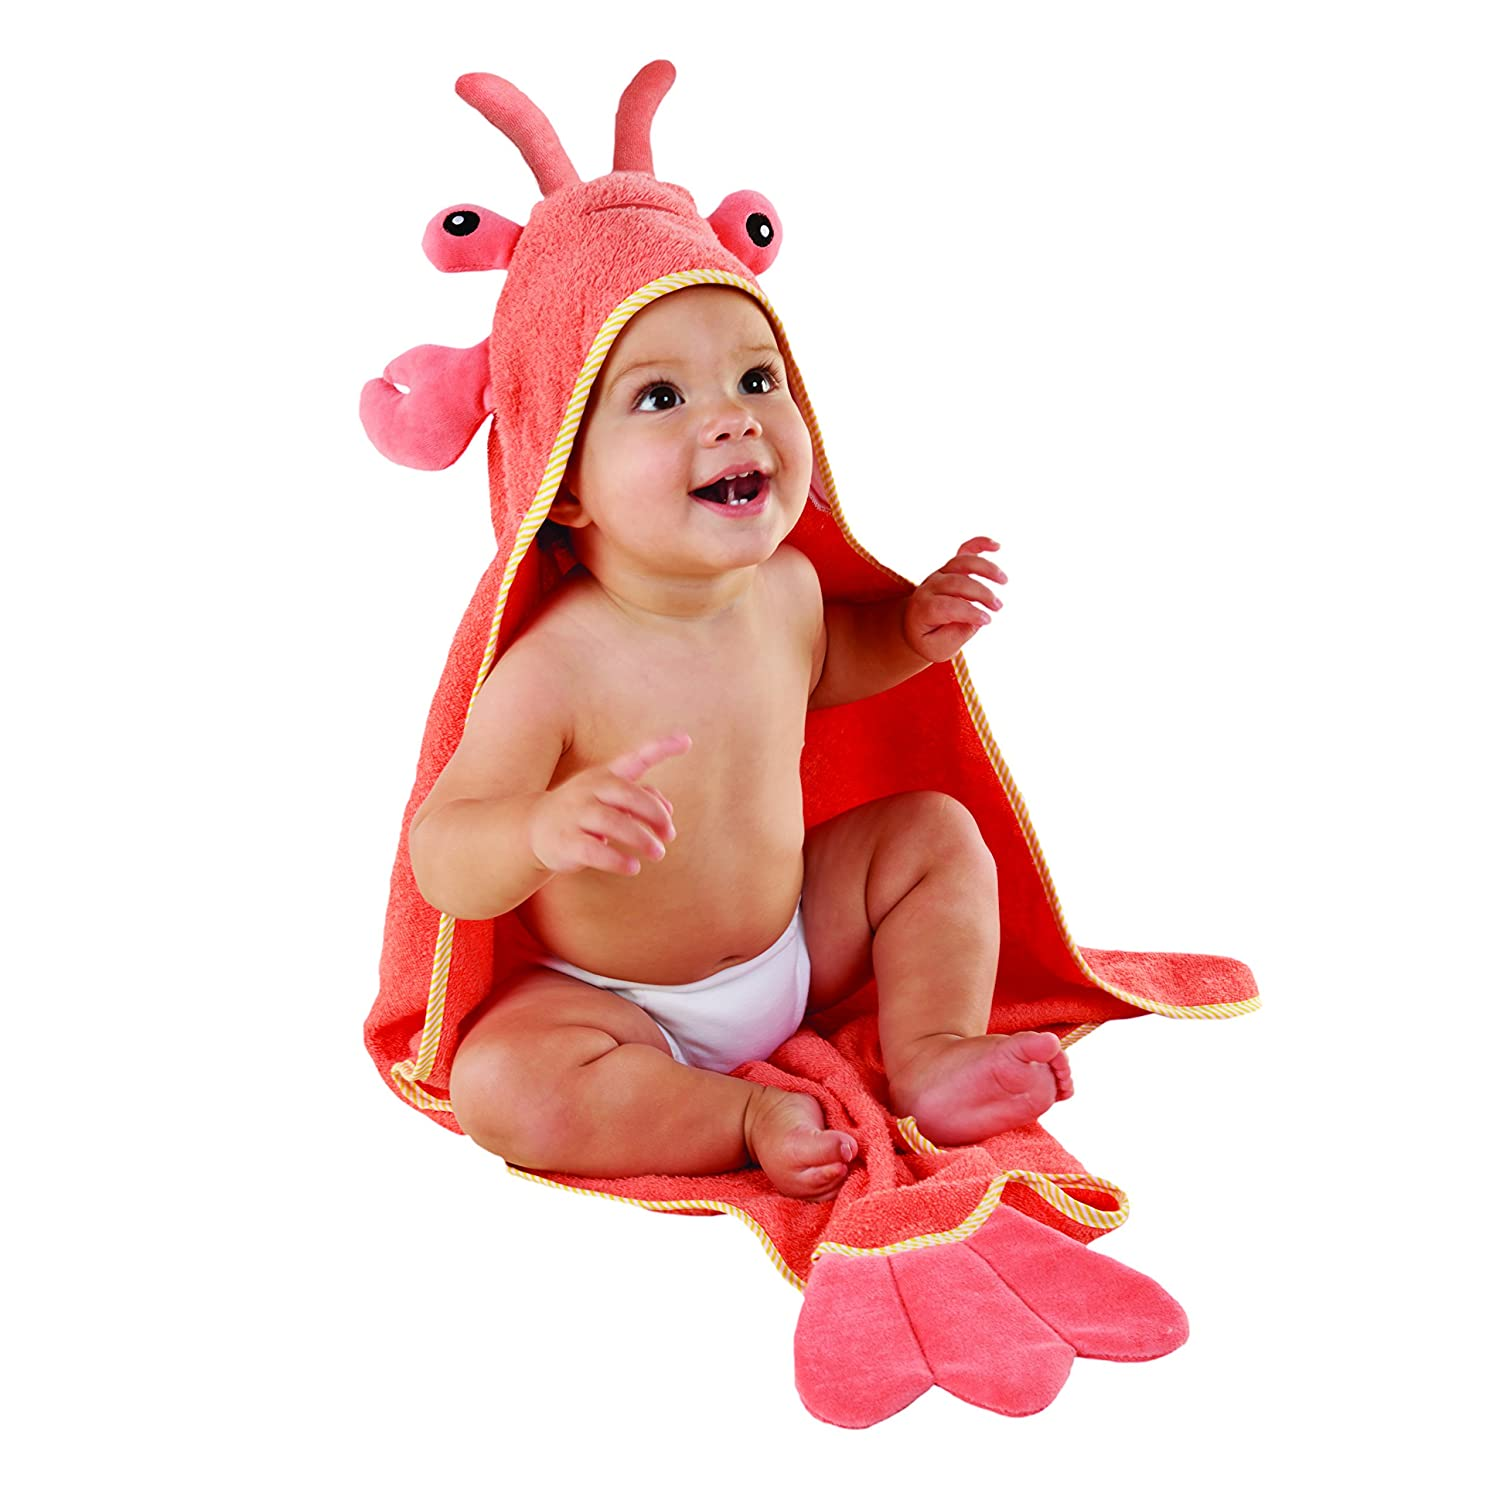 Baby Aspen, Lobster Laughs Lobster Hooded Towel, Red, 0-9 Months BA14013NA